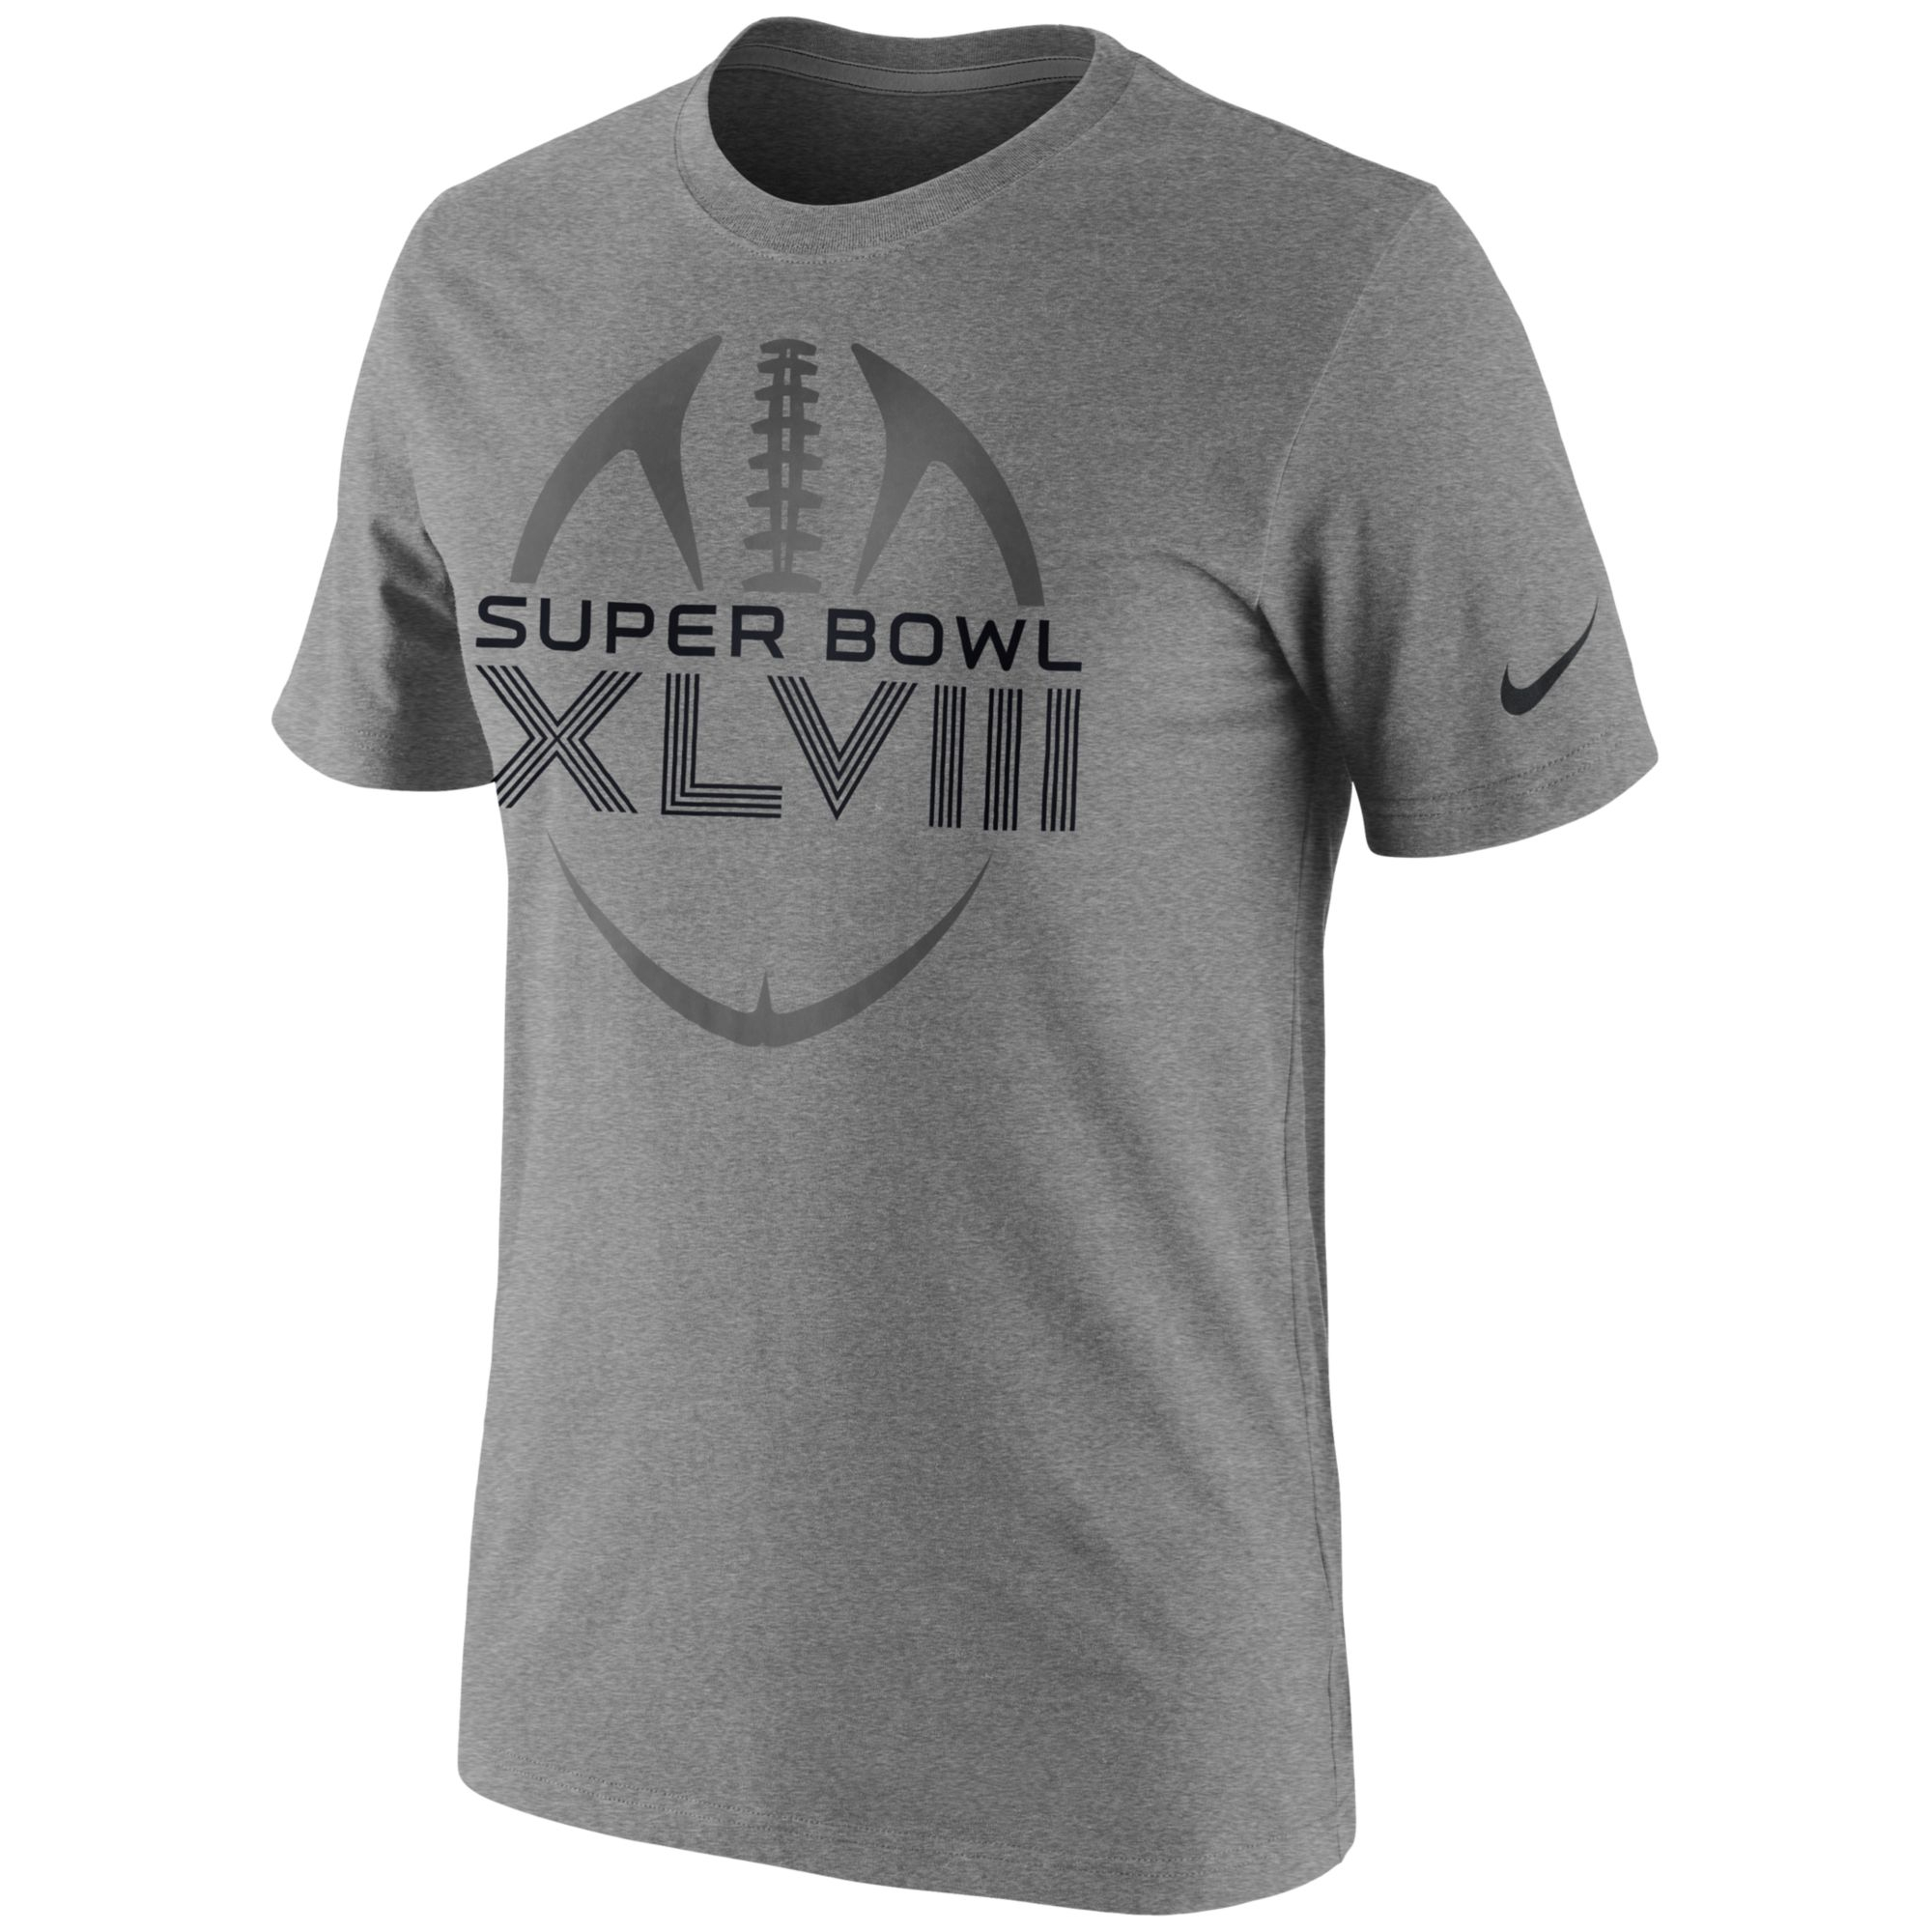 Nike Mens Super Bowl Xlviii Football Icon Legend Tshirt in ...